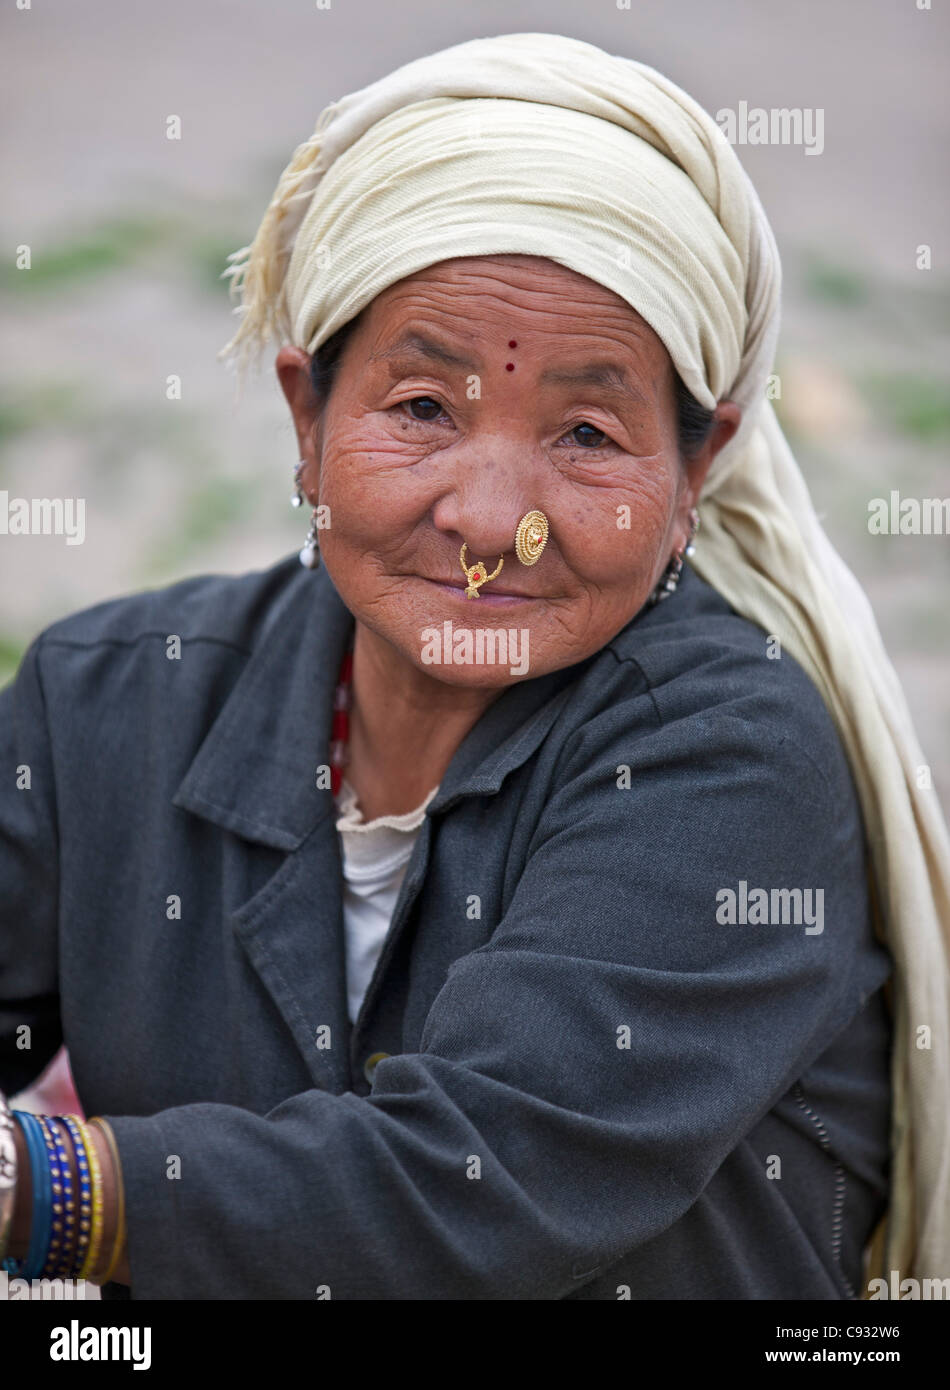 A Tibetan woman at Paro market. Many Bhutanese are descended from Tibetan immigrants. - Stock Image